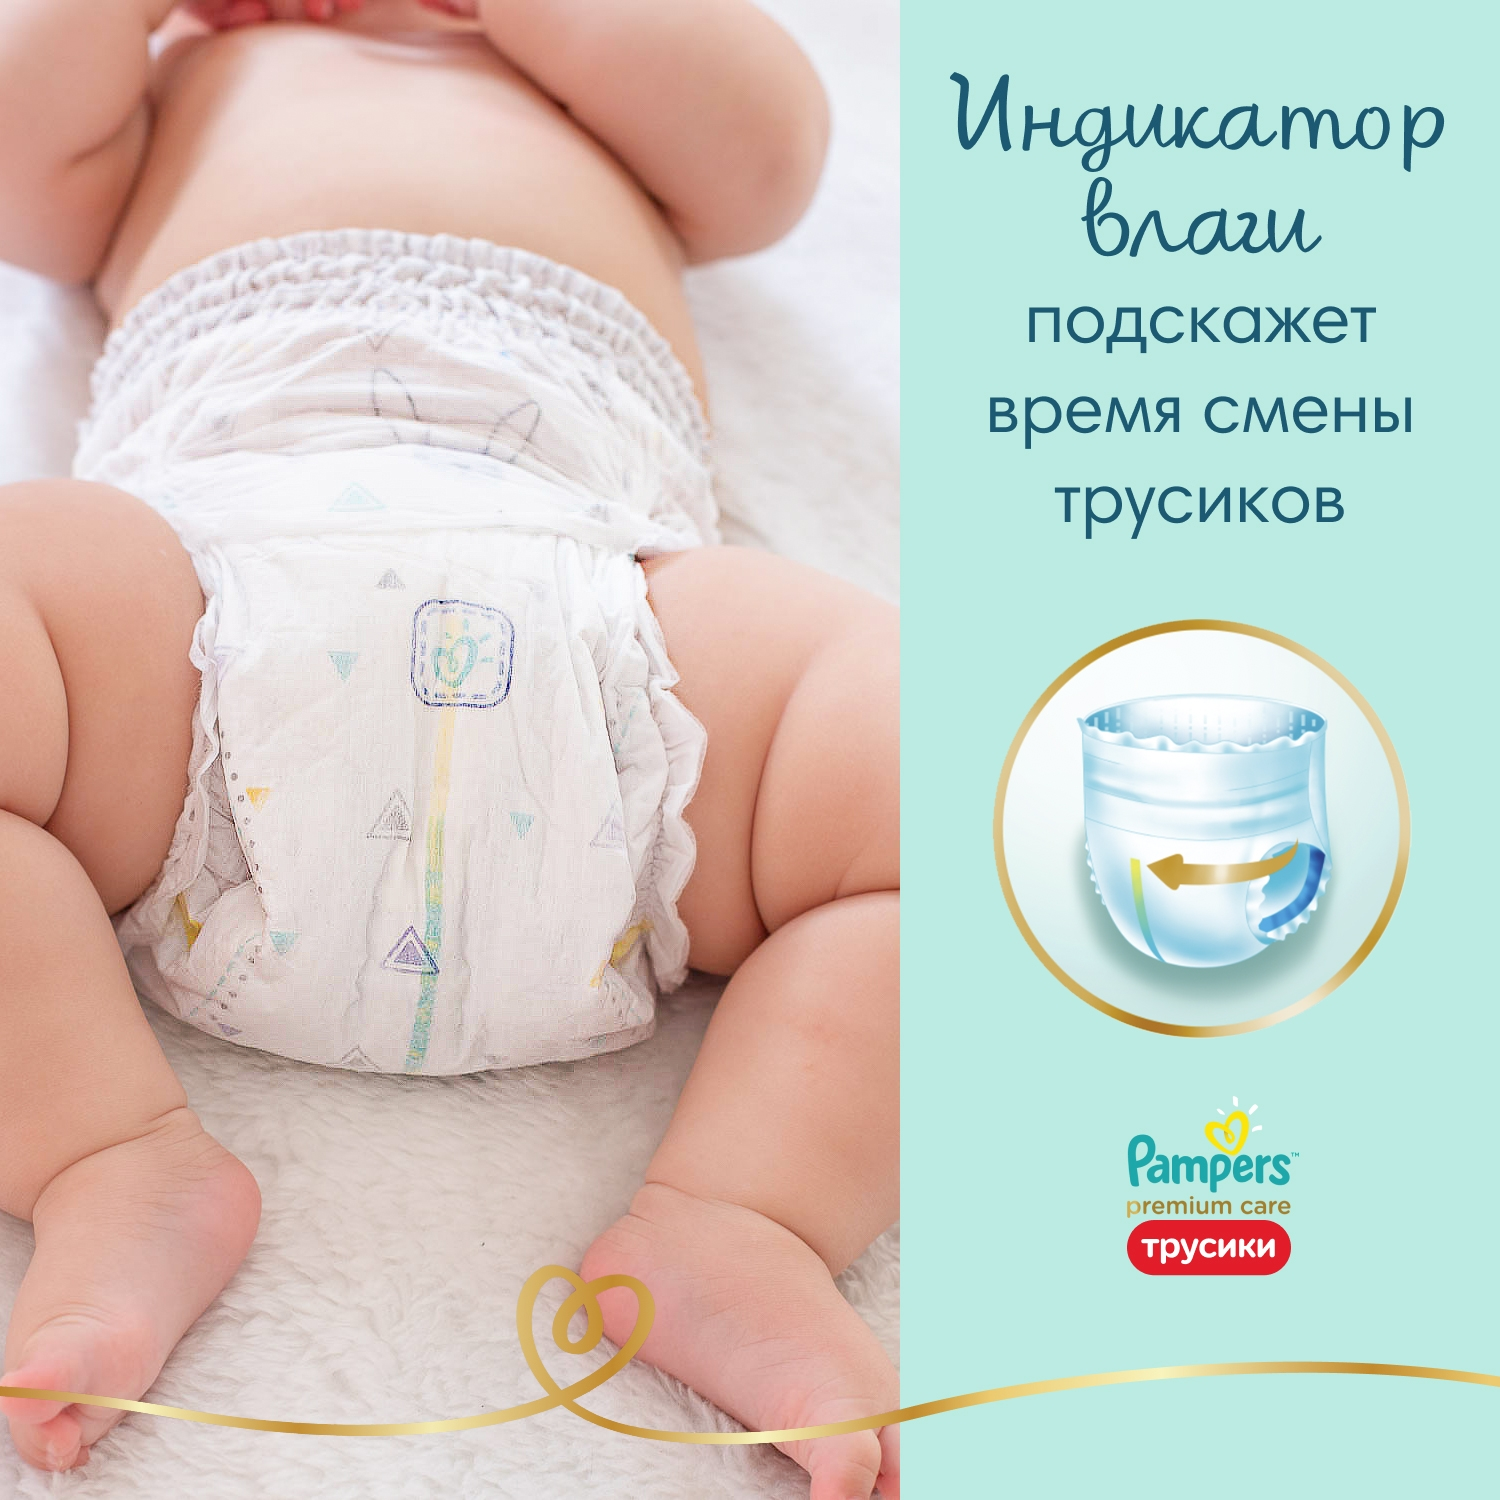 Трусики Pampers Premium Care 6 (15+кг), 42 шт